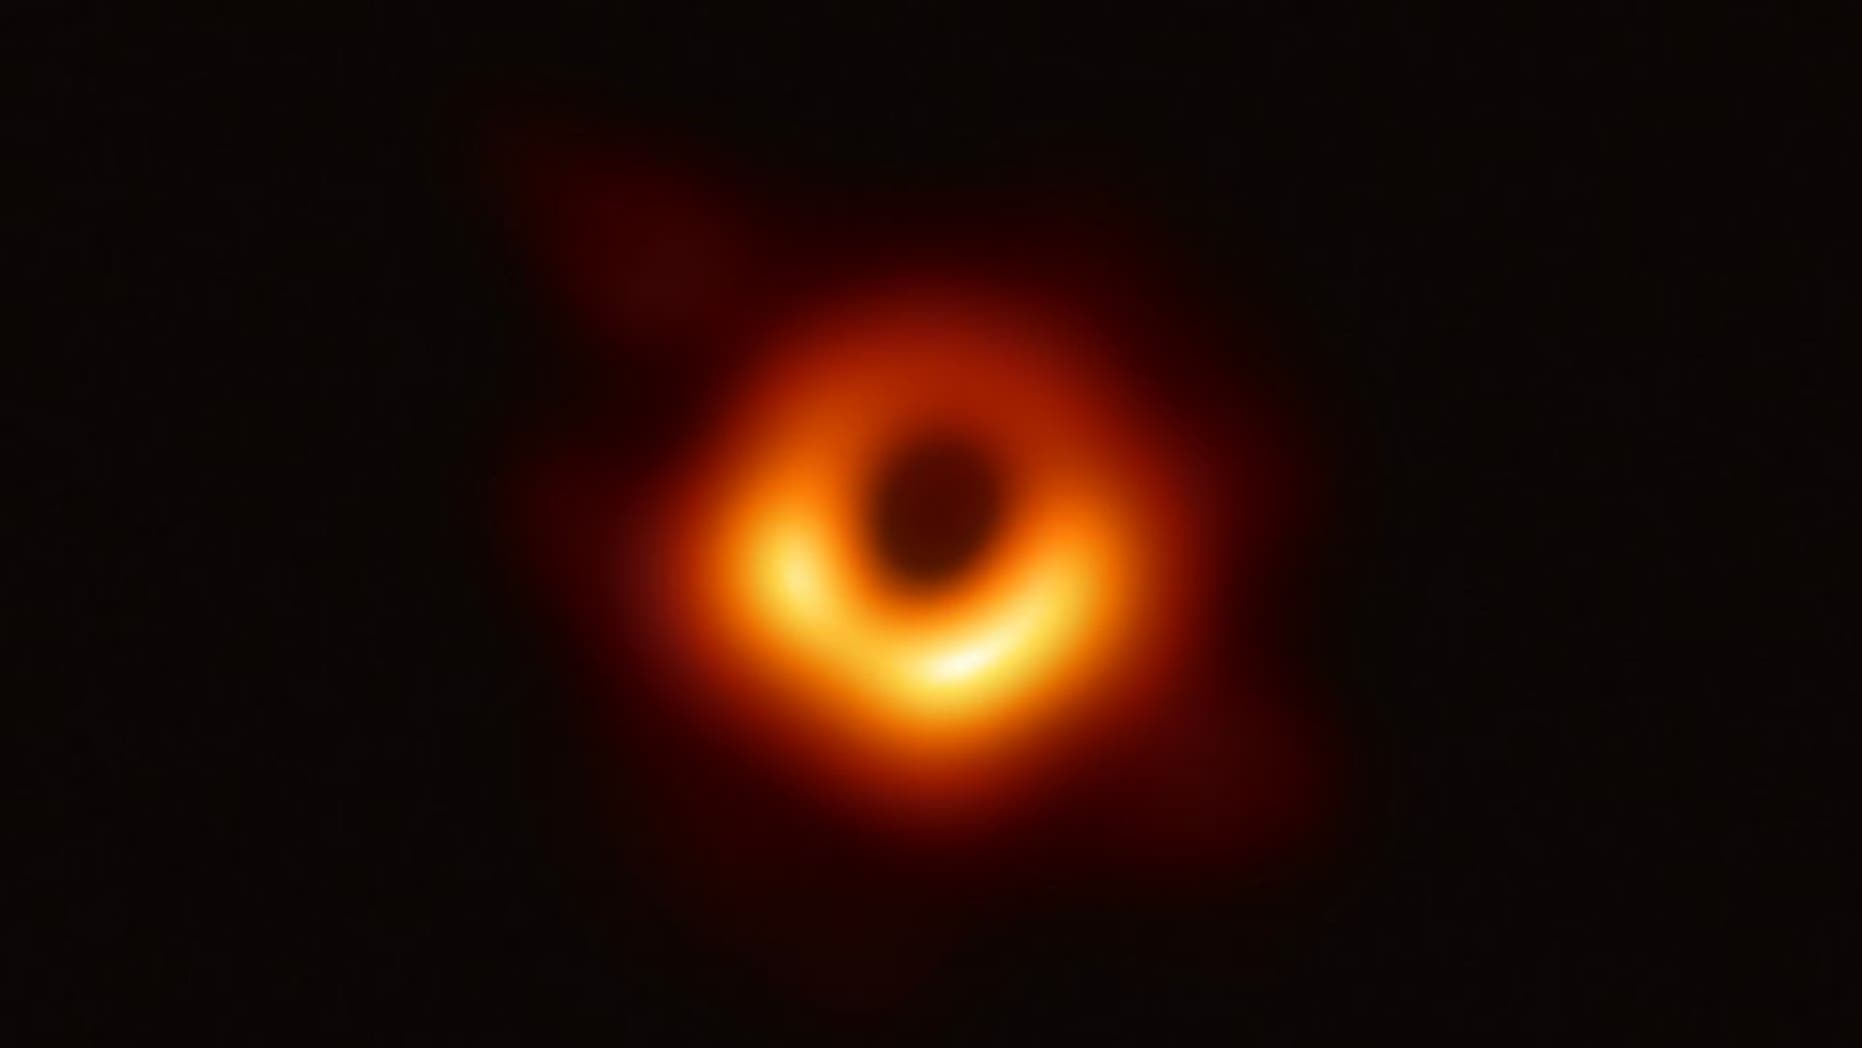 This image by the Event Horizon Telescope project shows the event horizon of the supermassive black hole at the heart of the M87 galaxy.